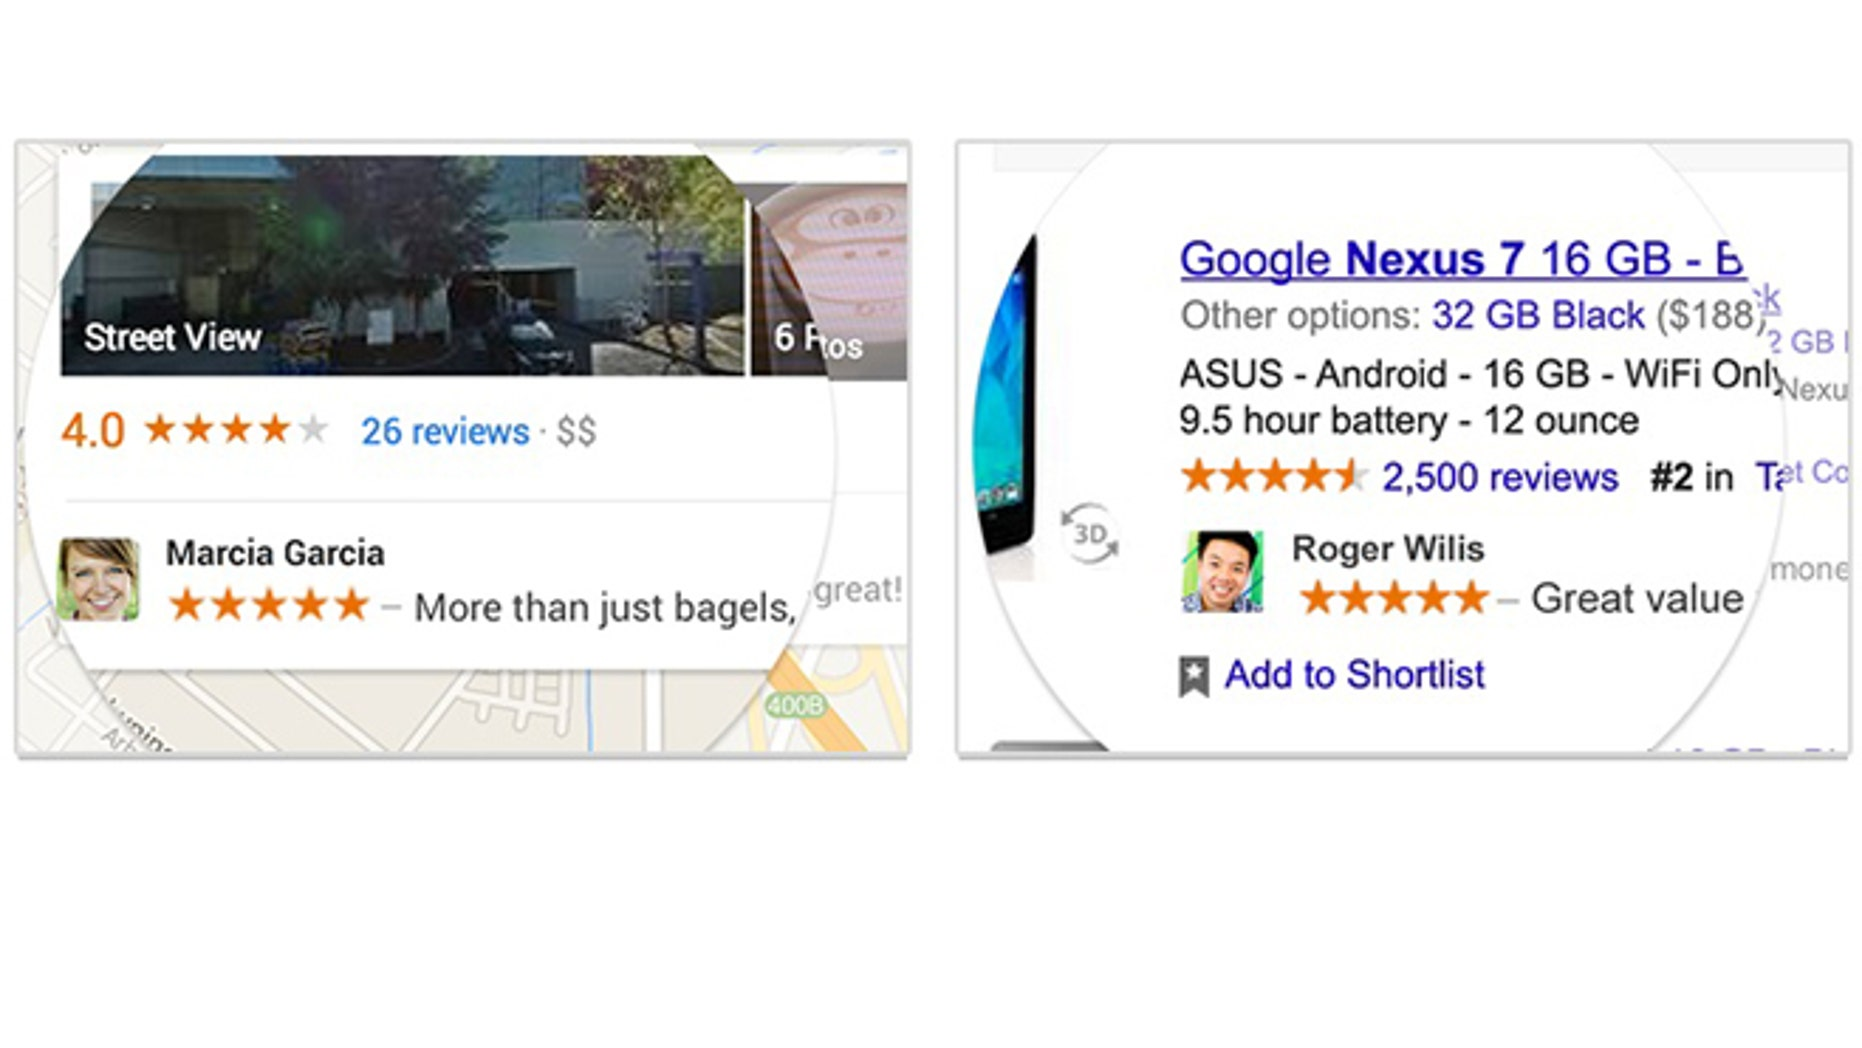 Examples of shared endorsements on Google.